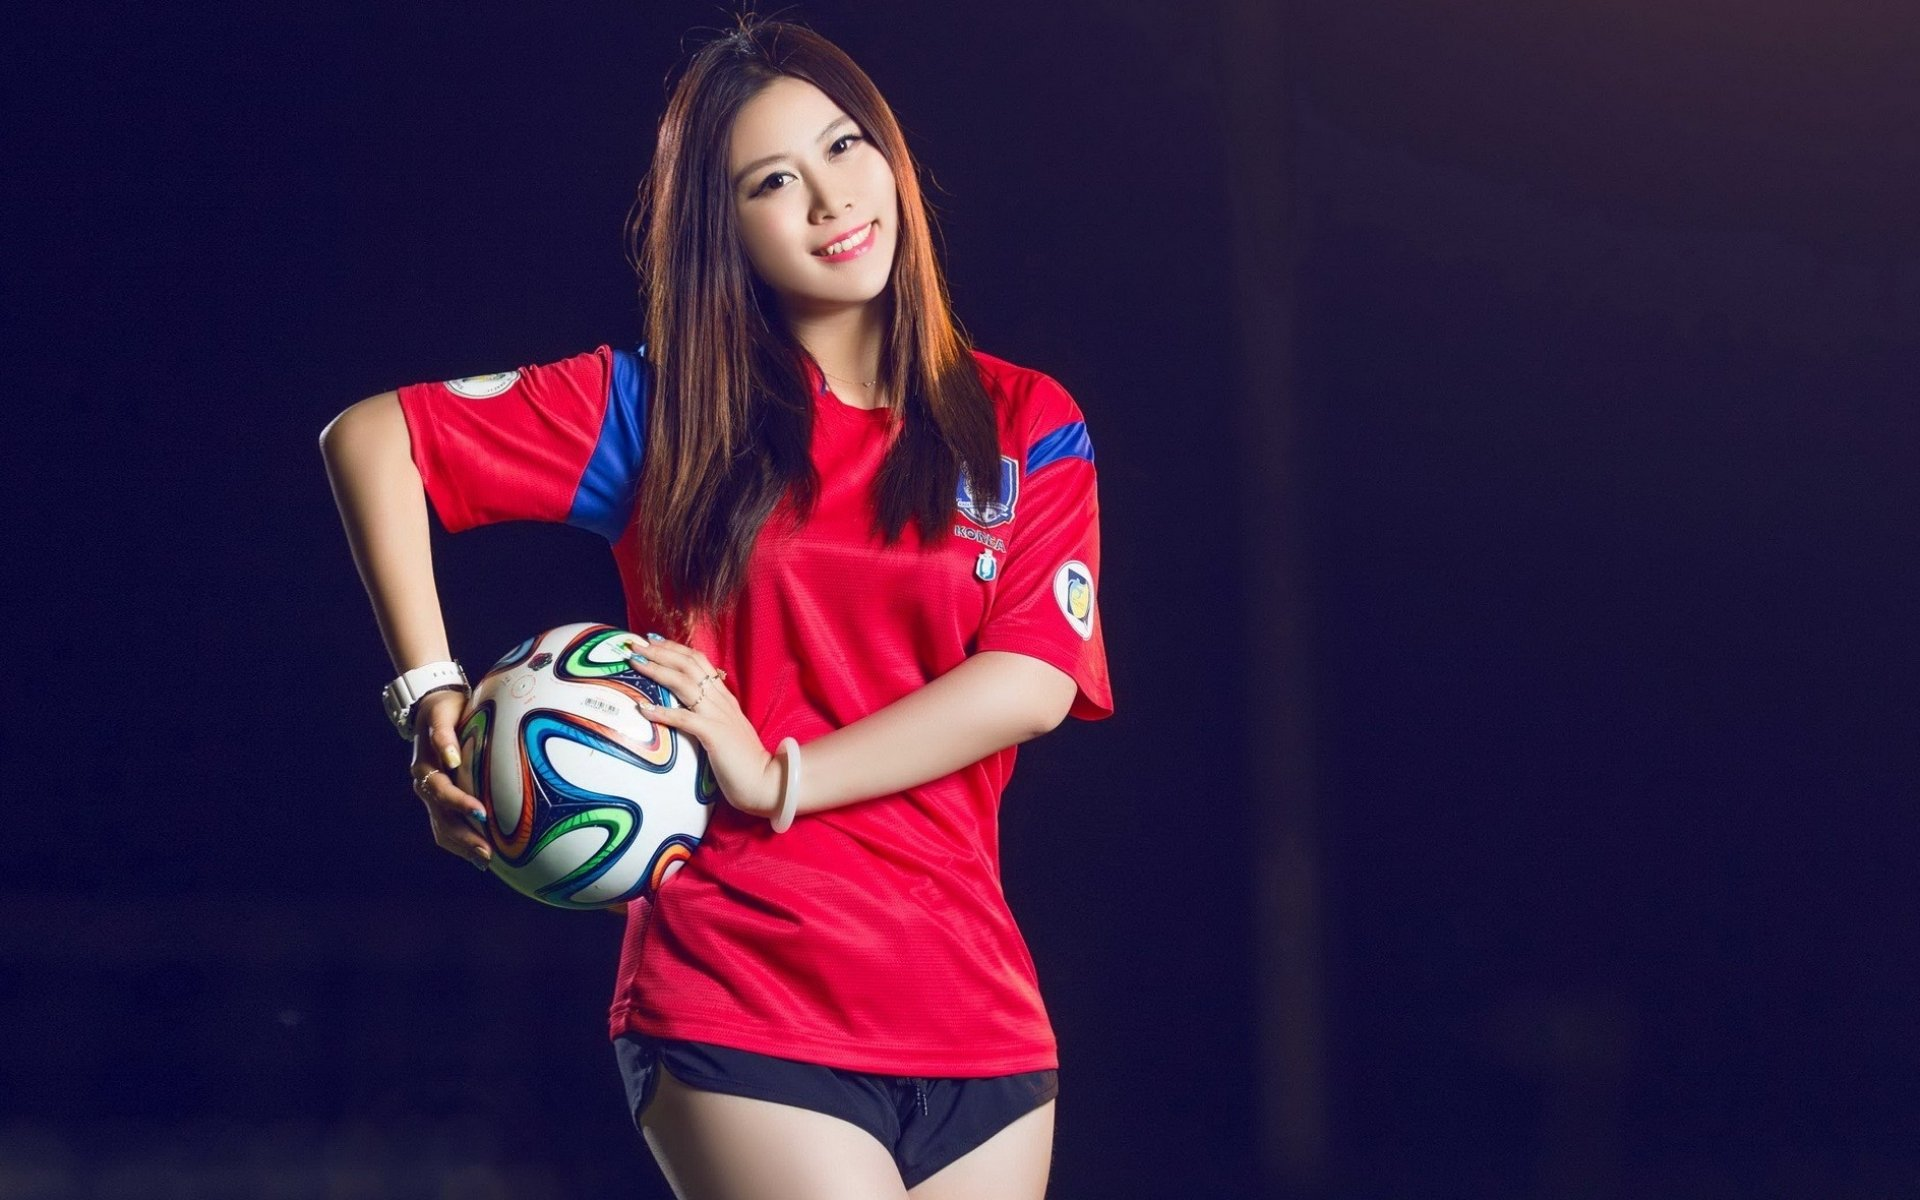 wallpapers sports japanese - photo #41